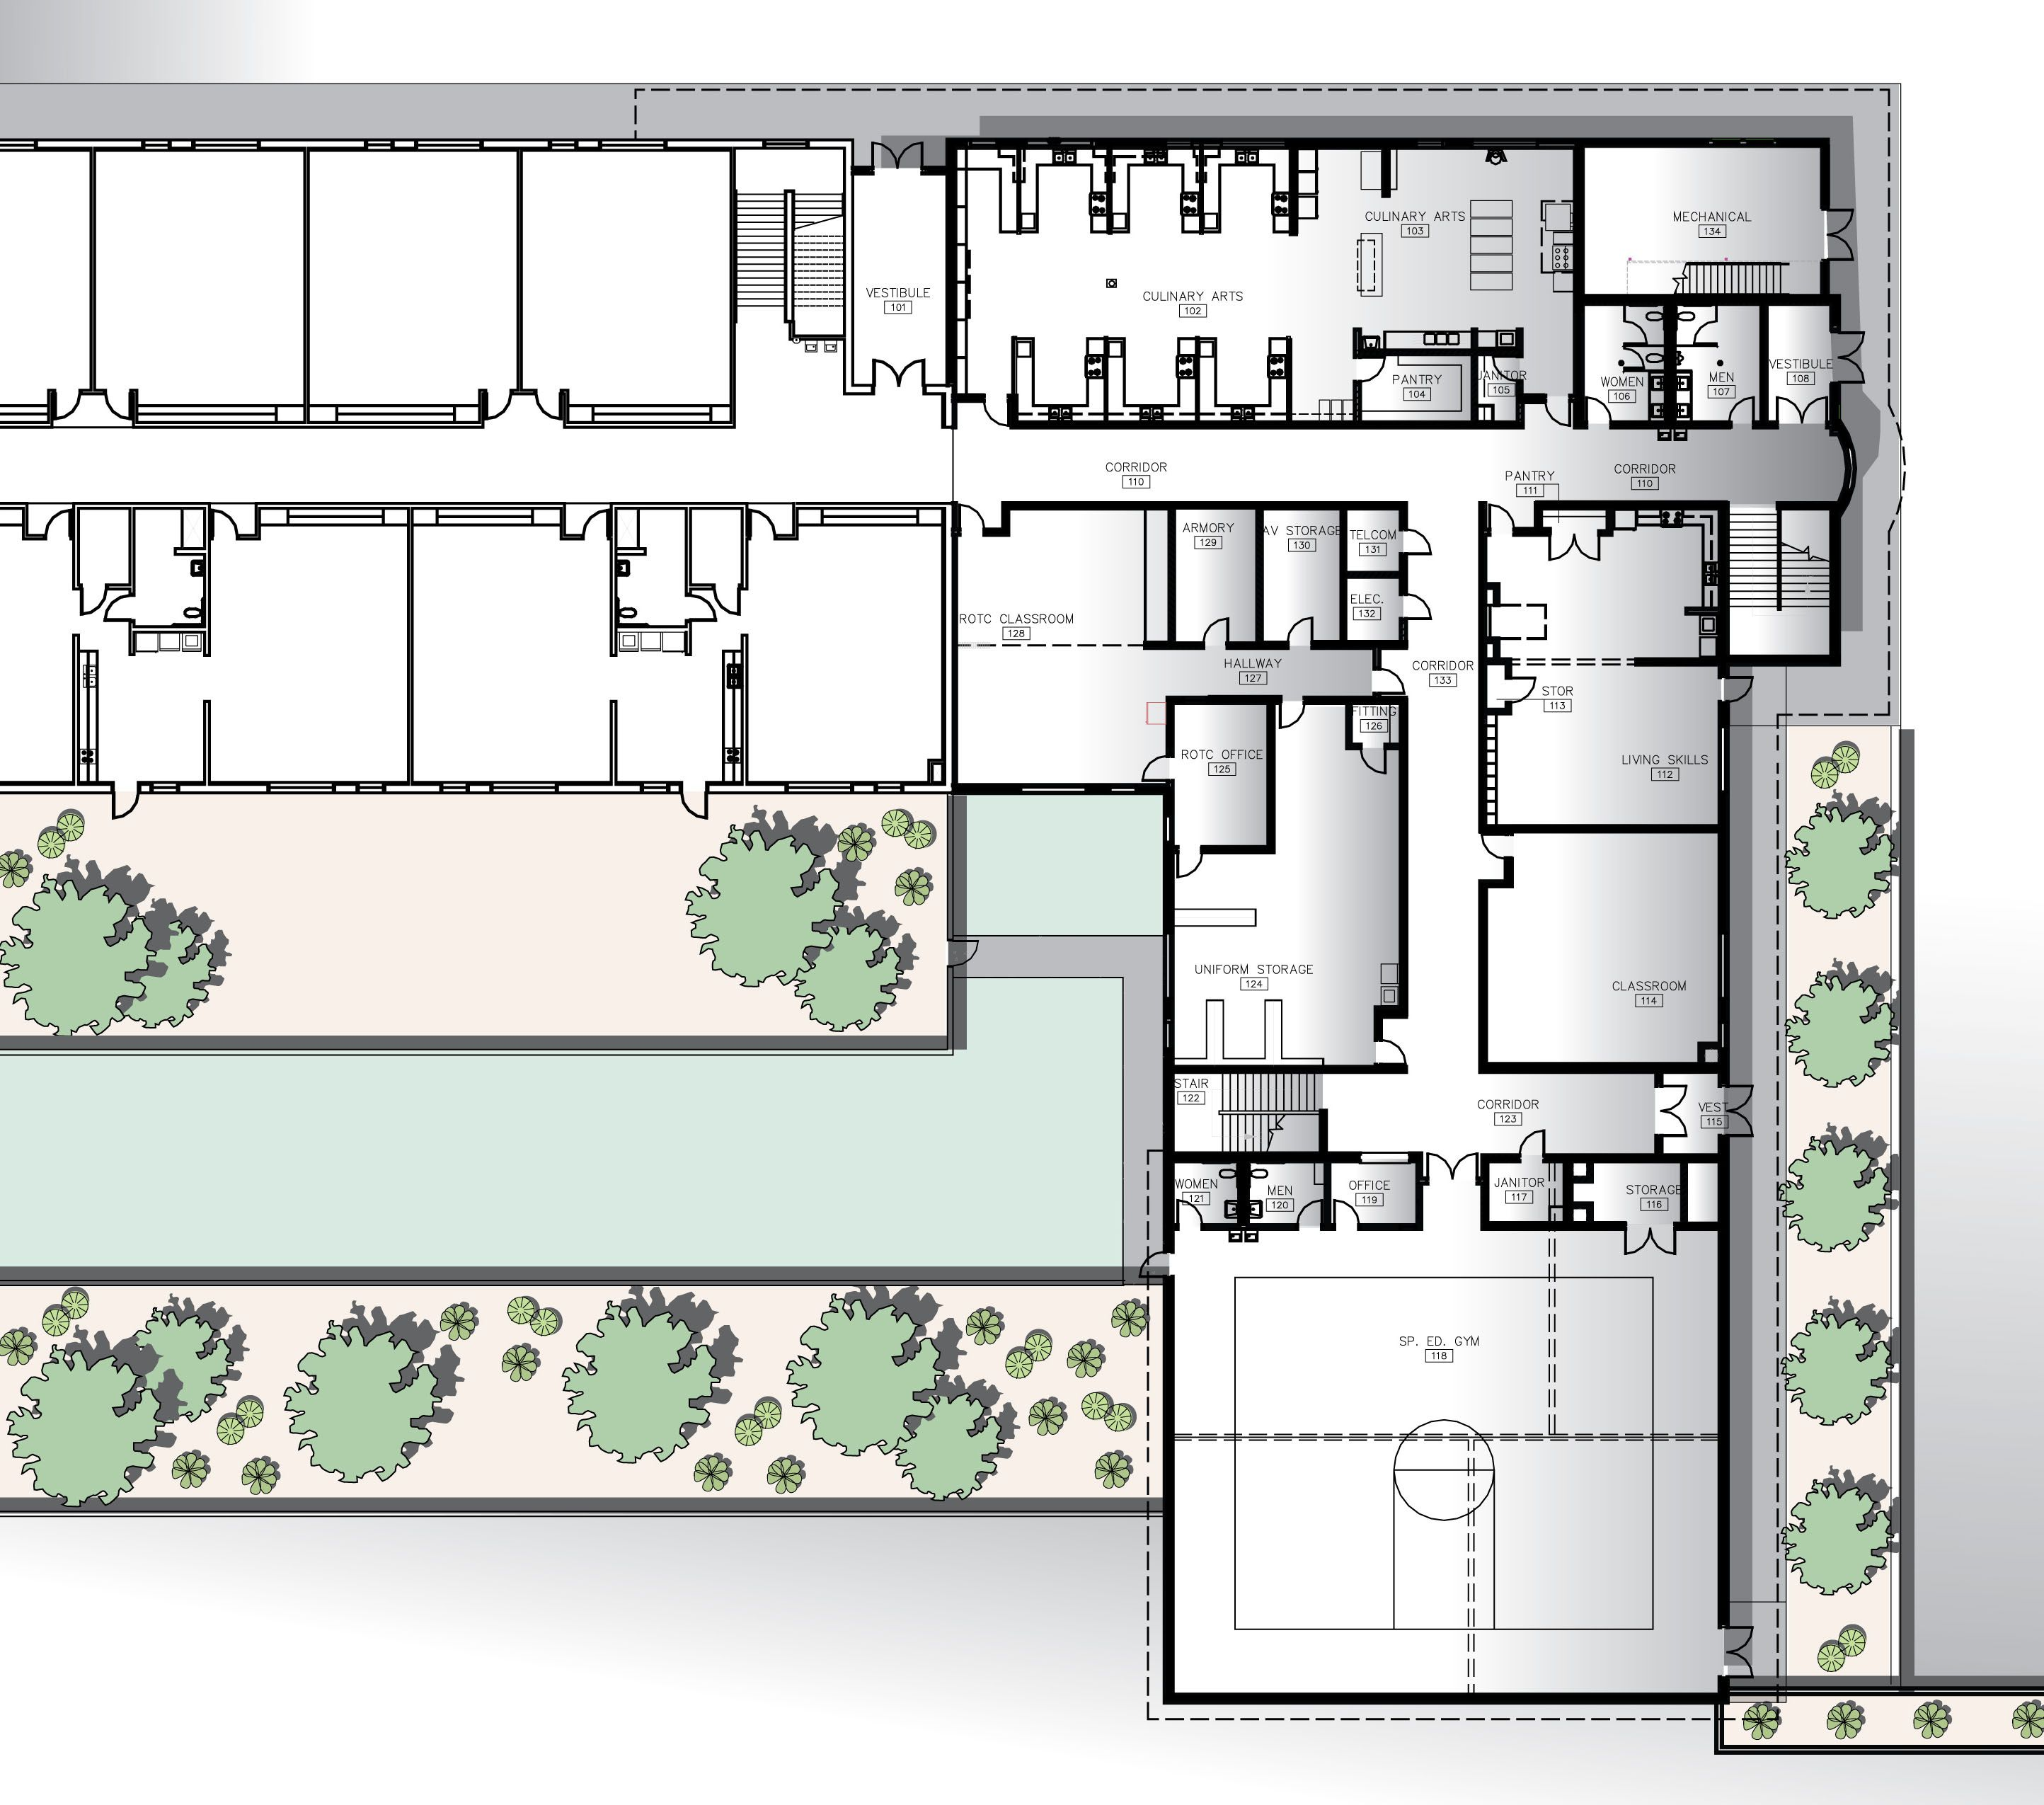 High School Floor Plans | High school floor plan Free Download,High school floor  plan